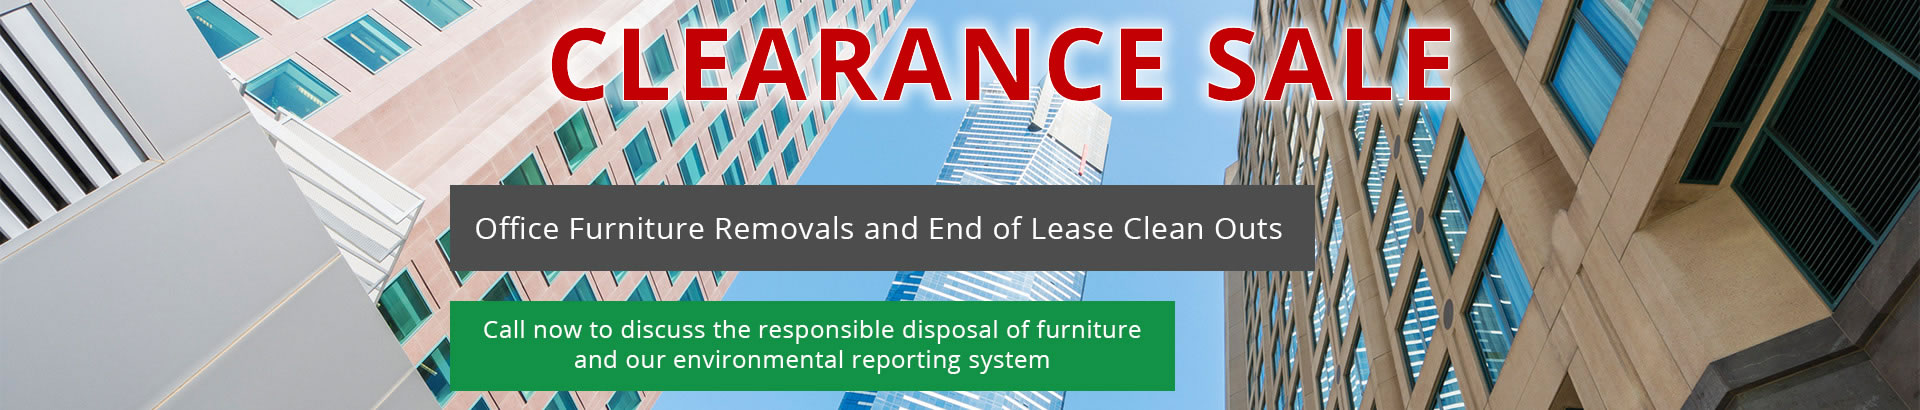 Office Furniture Removals and End of Lease Clean Outs. Call now to discuss the responsible disposal of furniture and our environmental reporting system.